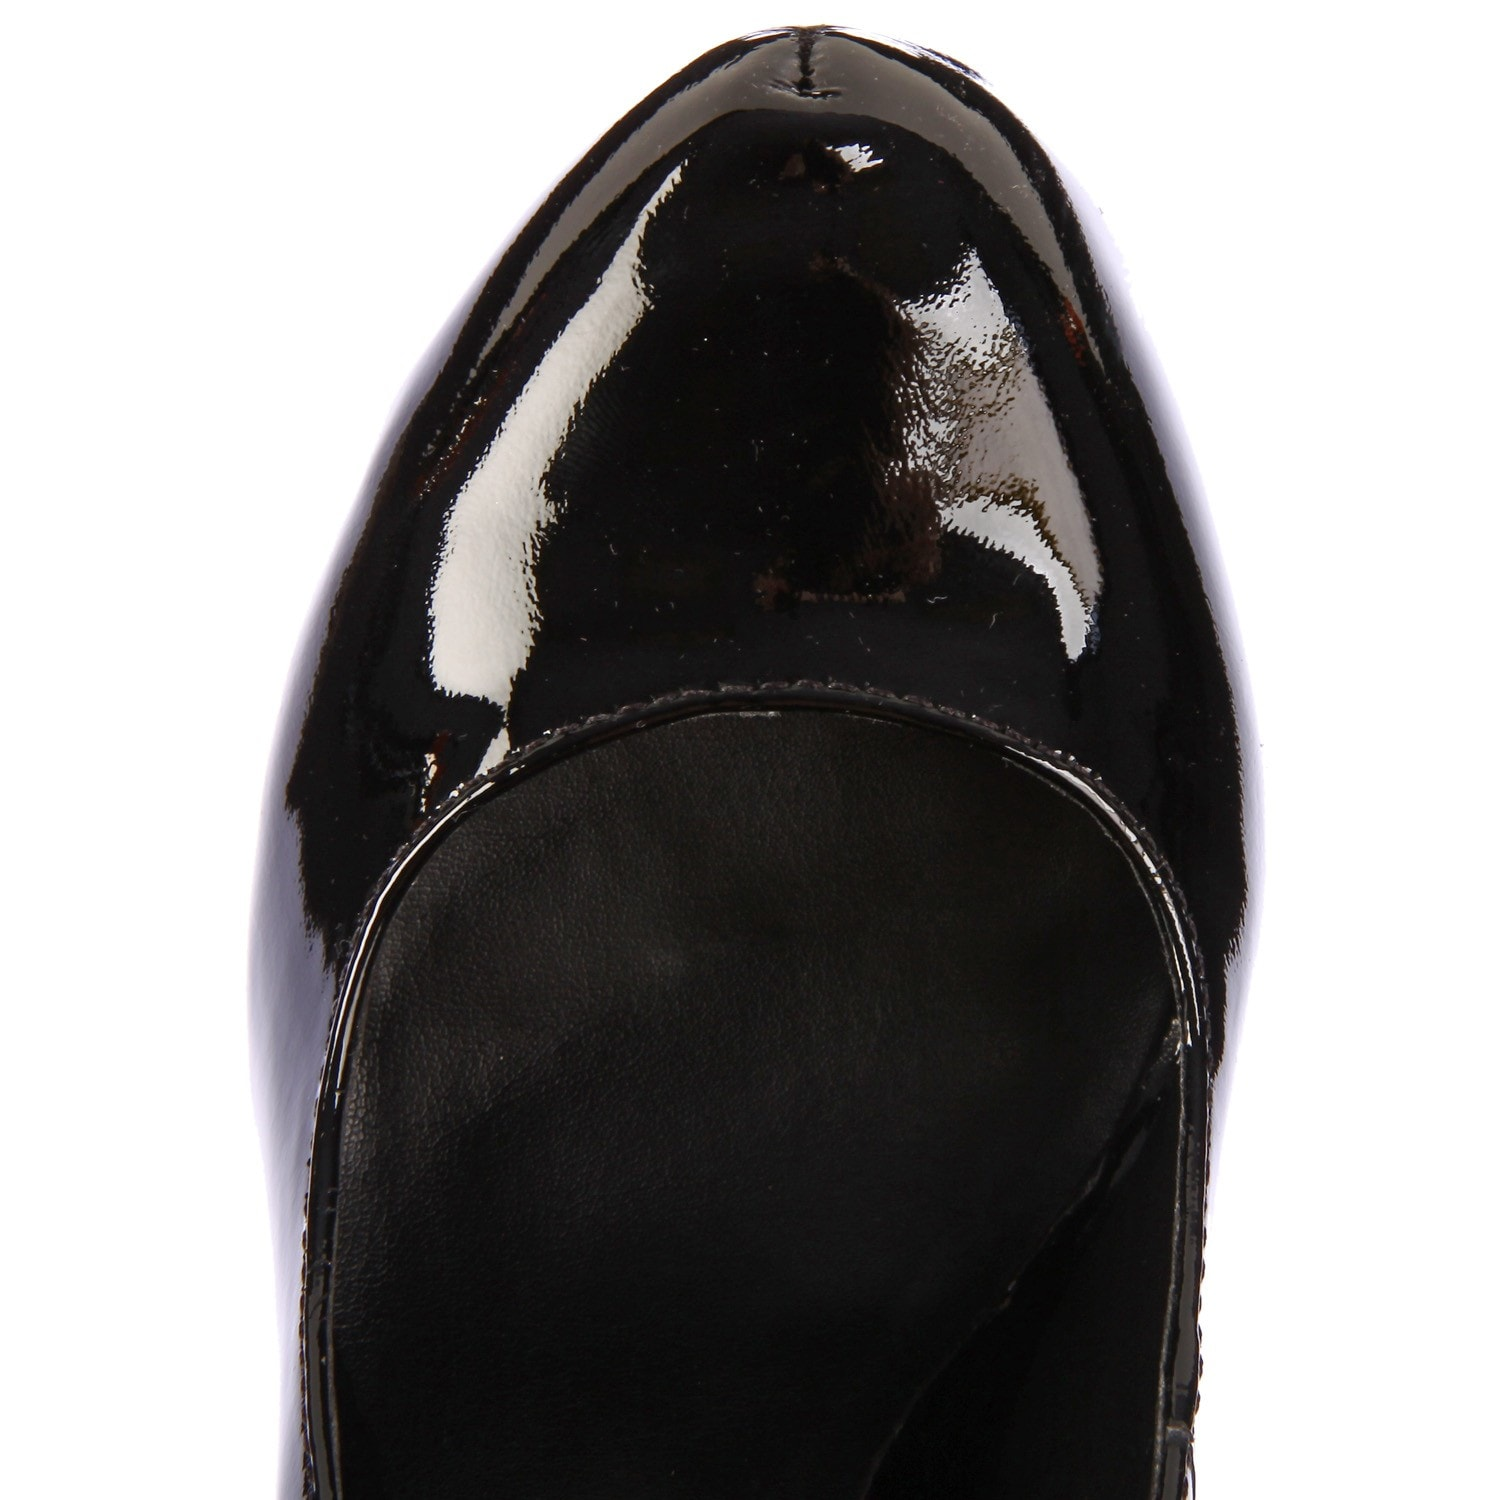 8f433c859e8 Shop Steven by Steve Madden Women s  Prosprus  Black Patent Leather Pumps -  Free Shipping On Orders Over  45 - Overstock - 6409997